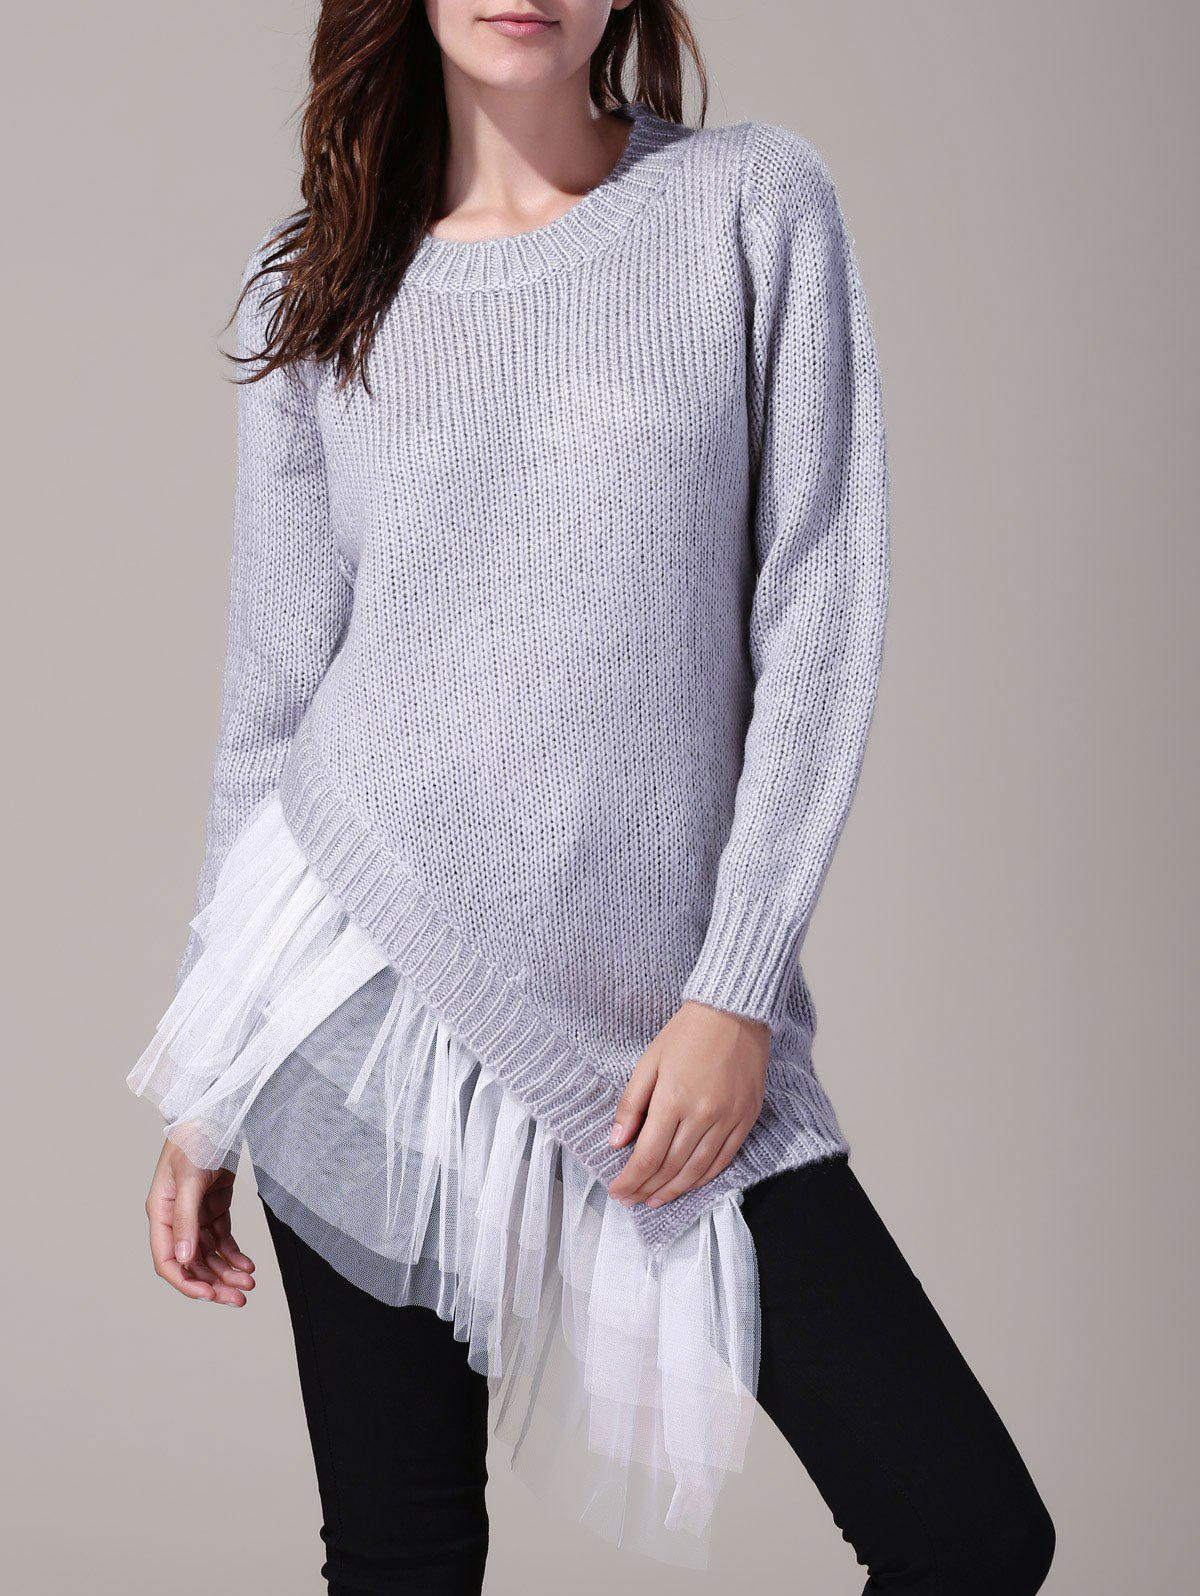 Affordable Women's Stylish Round Neck Lace Splicing Long Sleeve Asymmetrical Sweater